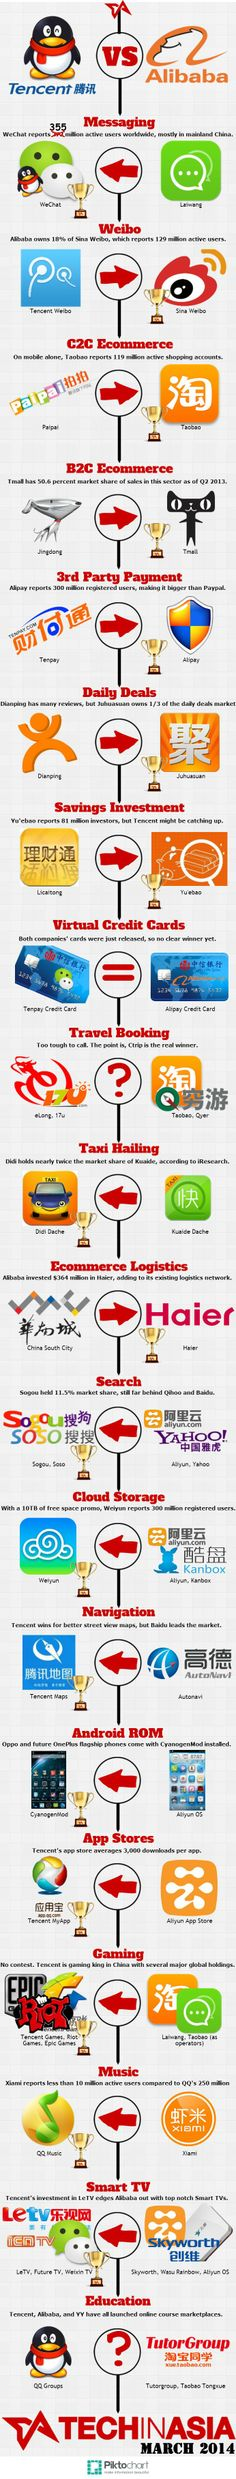 Baidu, Alibaba, Tecent (BAT) are the three major internet companies in China. As the development of new media & internet, they have been fighting to grab a territory. Social Tv, Social Media, Social Business, Digital Trends, New Media, Digital Media, Ecommerce, Told You So, Tech